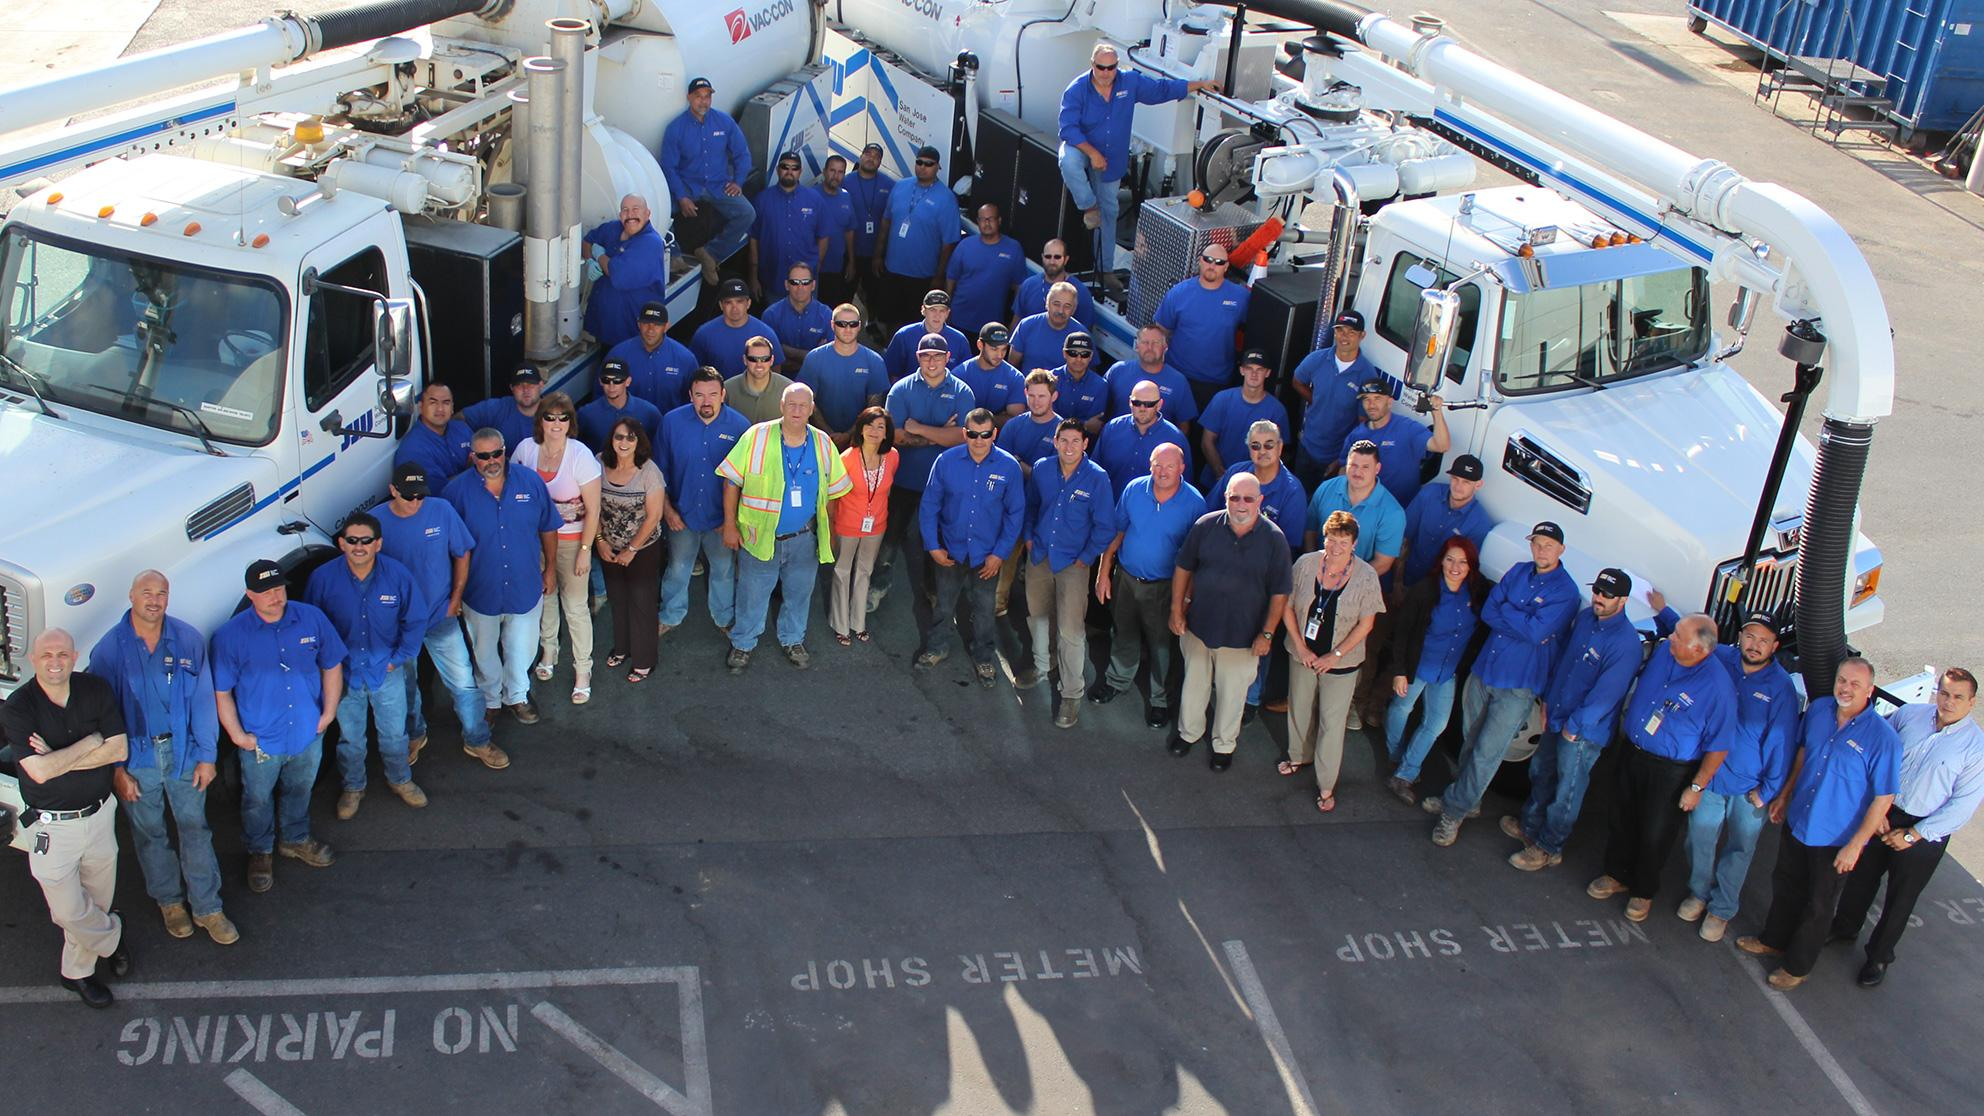 Diverse San Jose Water employees stand outside together